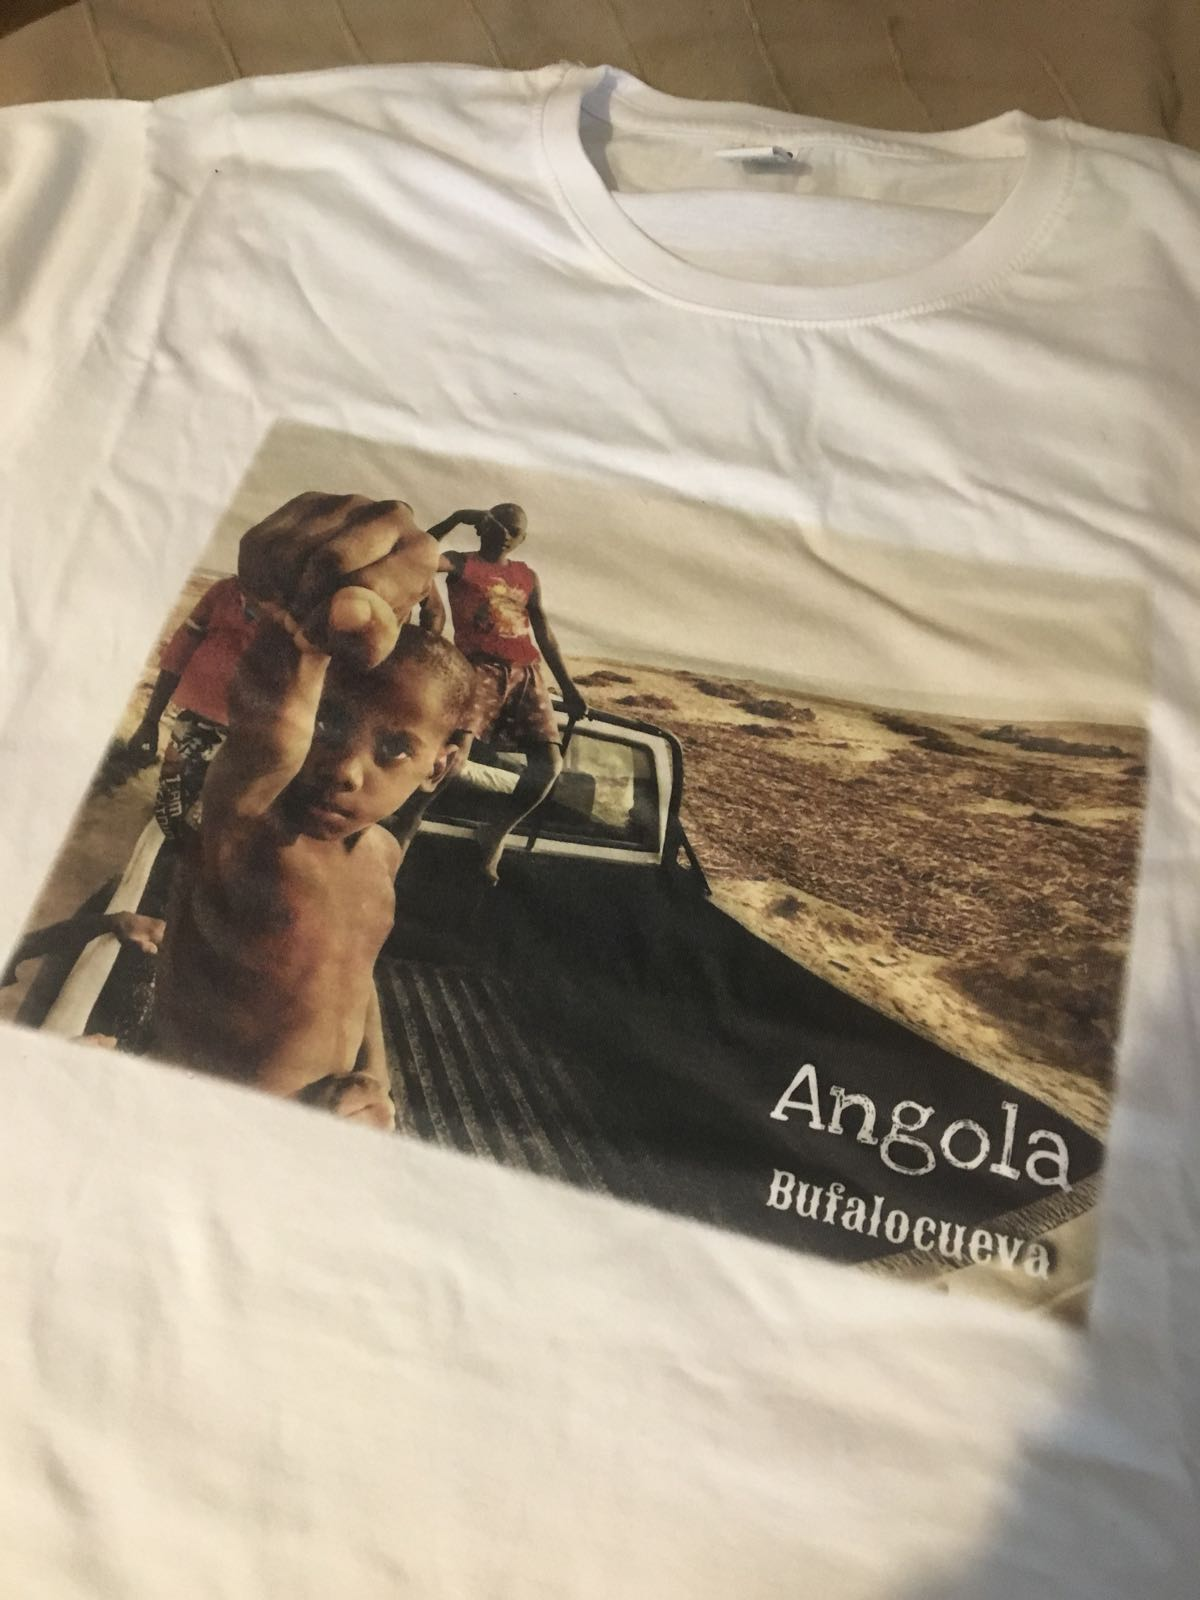 Camiseta exclusiva Angola